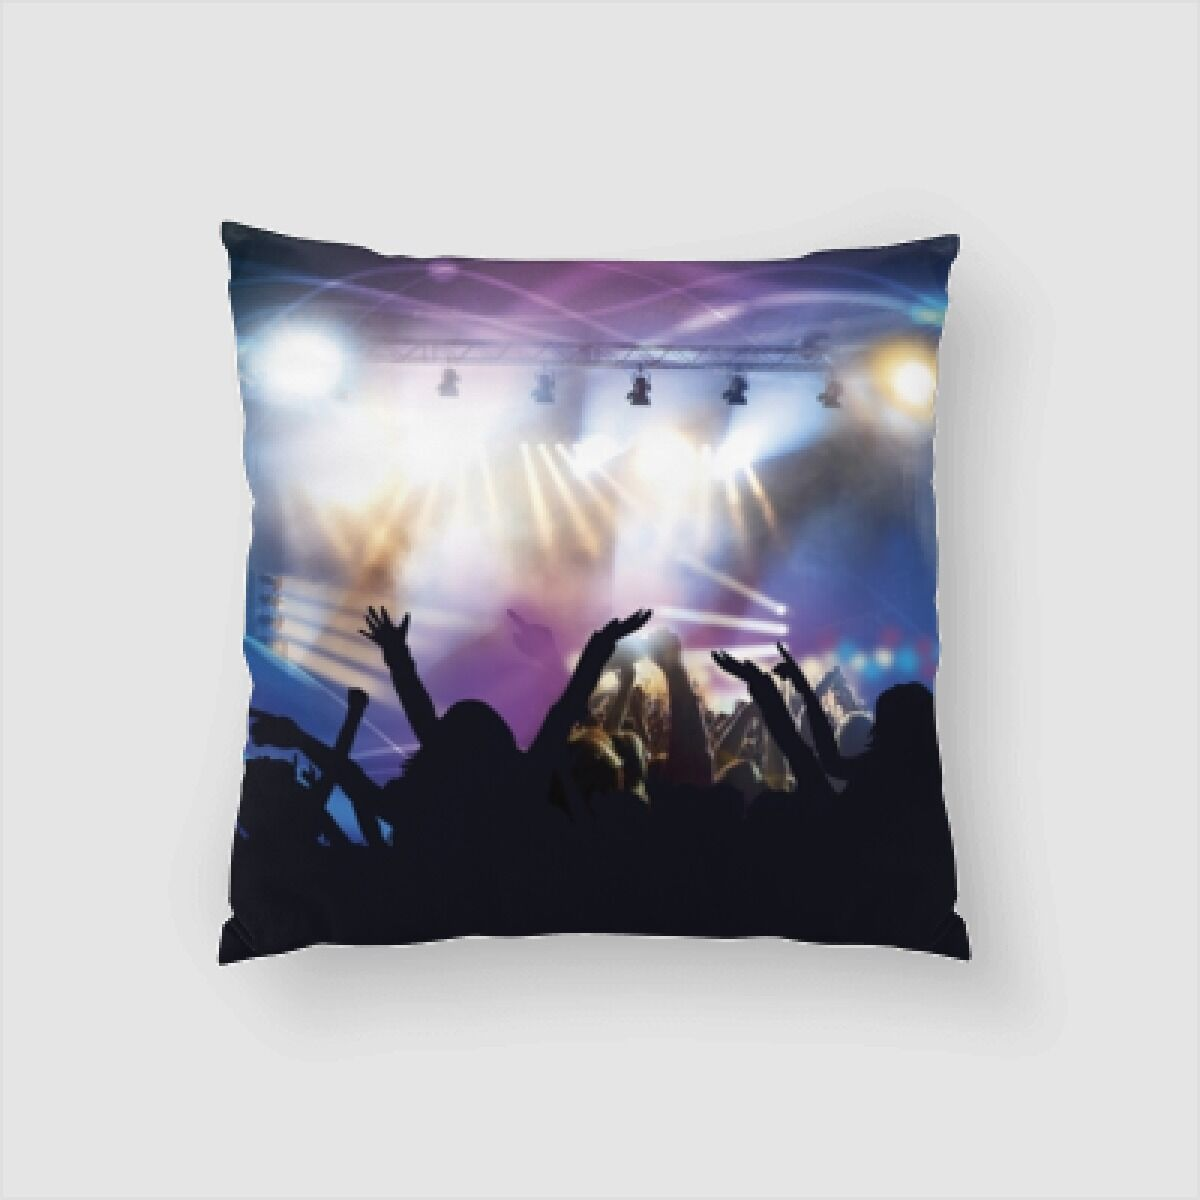 Peek Crowd (1) Throw Pillow